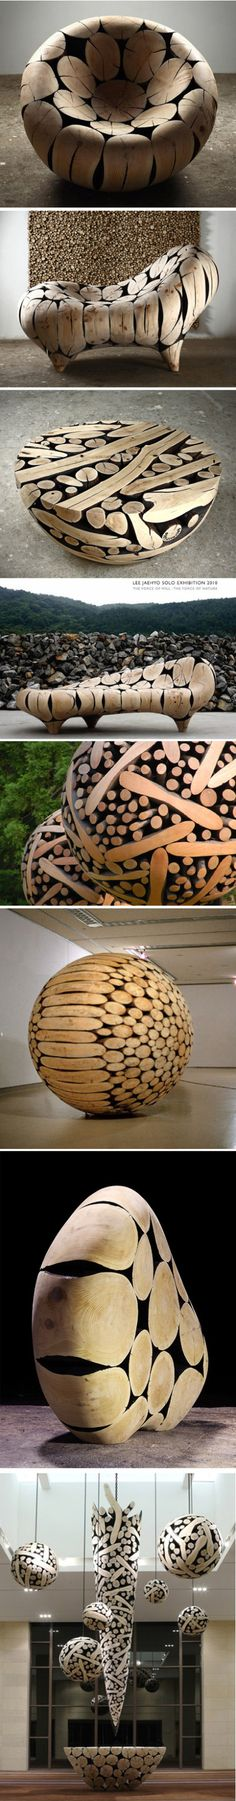 Sculptures of Korean artist Lee Jae-Hyo (Jaehyo Lee 1965 -). Timber production, both natural feeling, at the same time strengthen the simple geometric beauty Log Furniture, Funky Furniture, Unique Furniture, Garden Furniture, Furniture Design, Wood Projects, Woodworking Projects, Furniture Inspiration, Logs